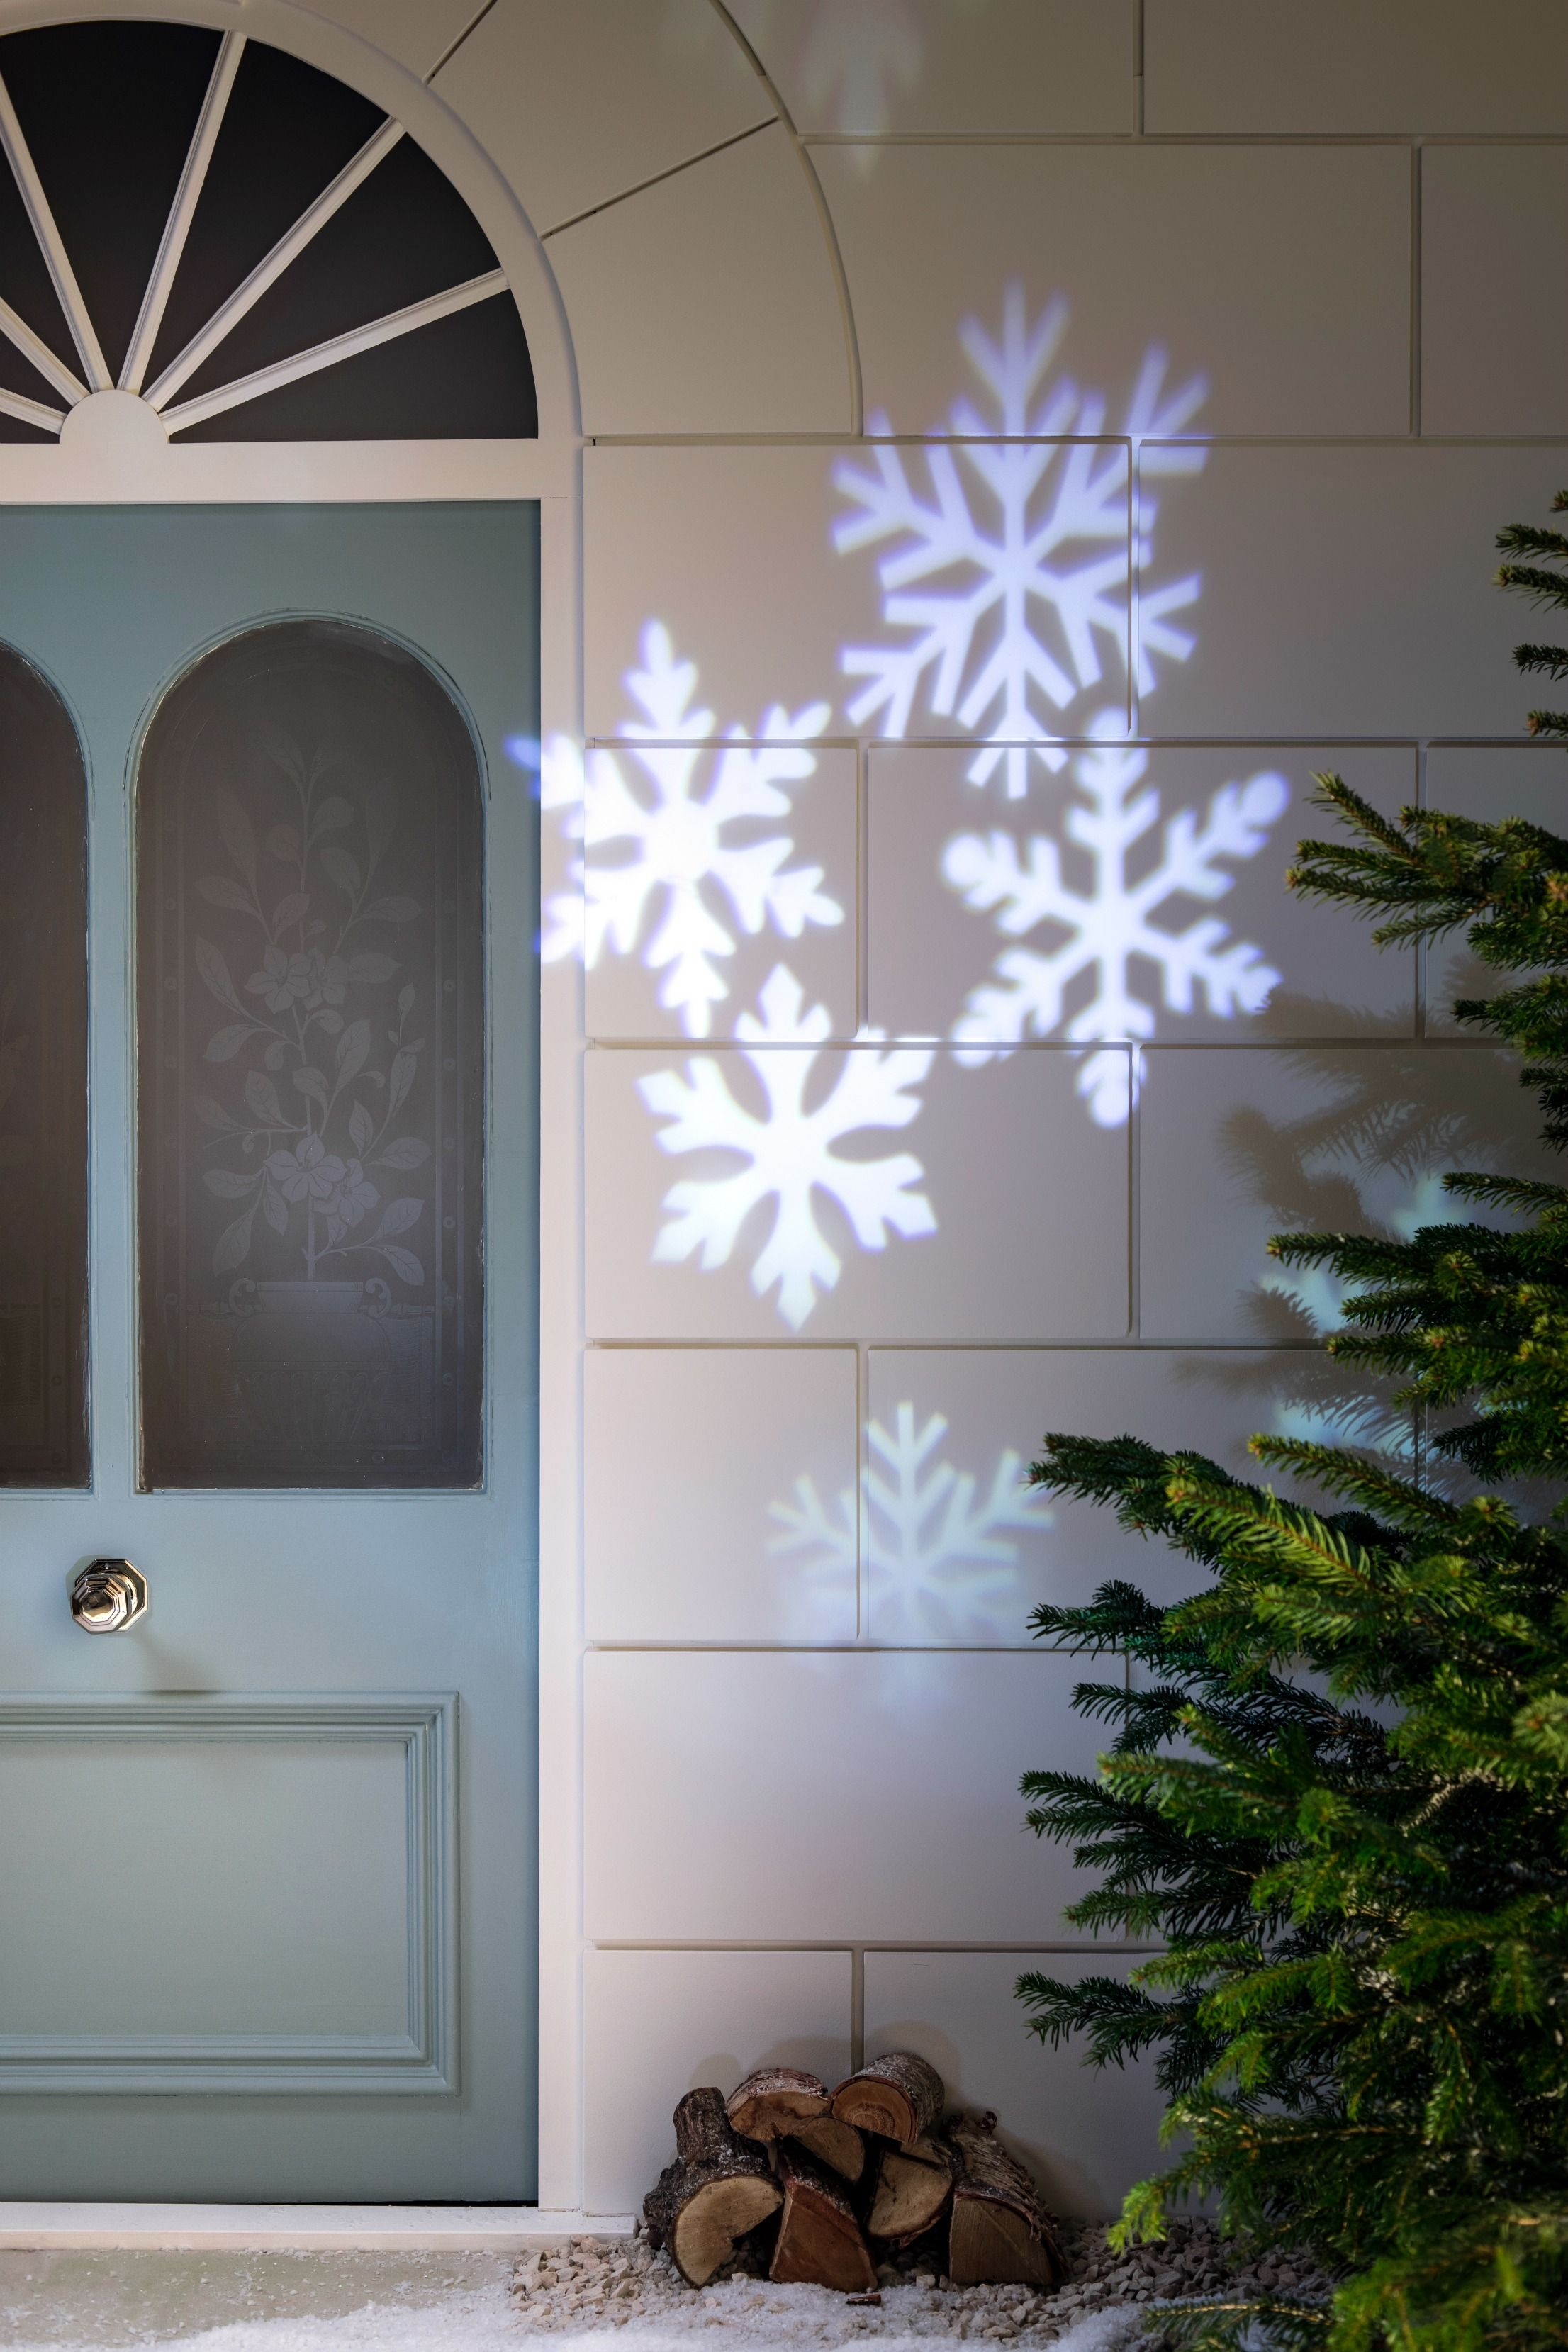 Have yourself a white Christmas with our snowflake projector light